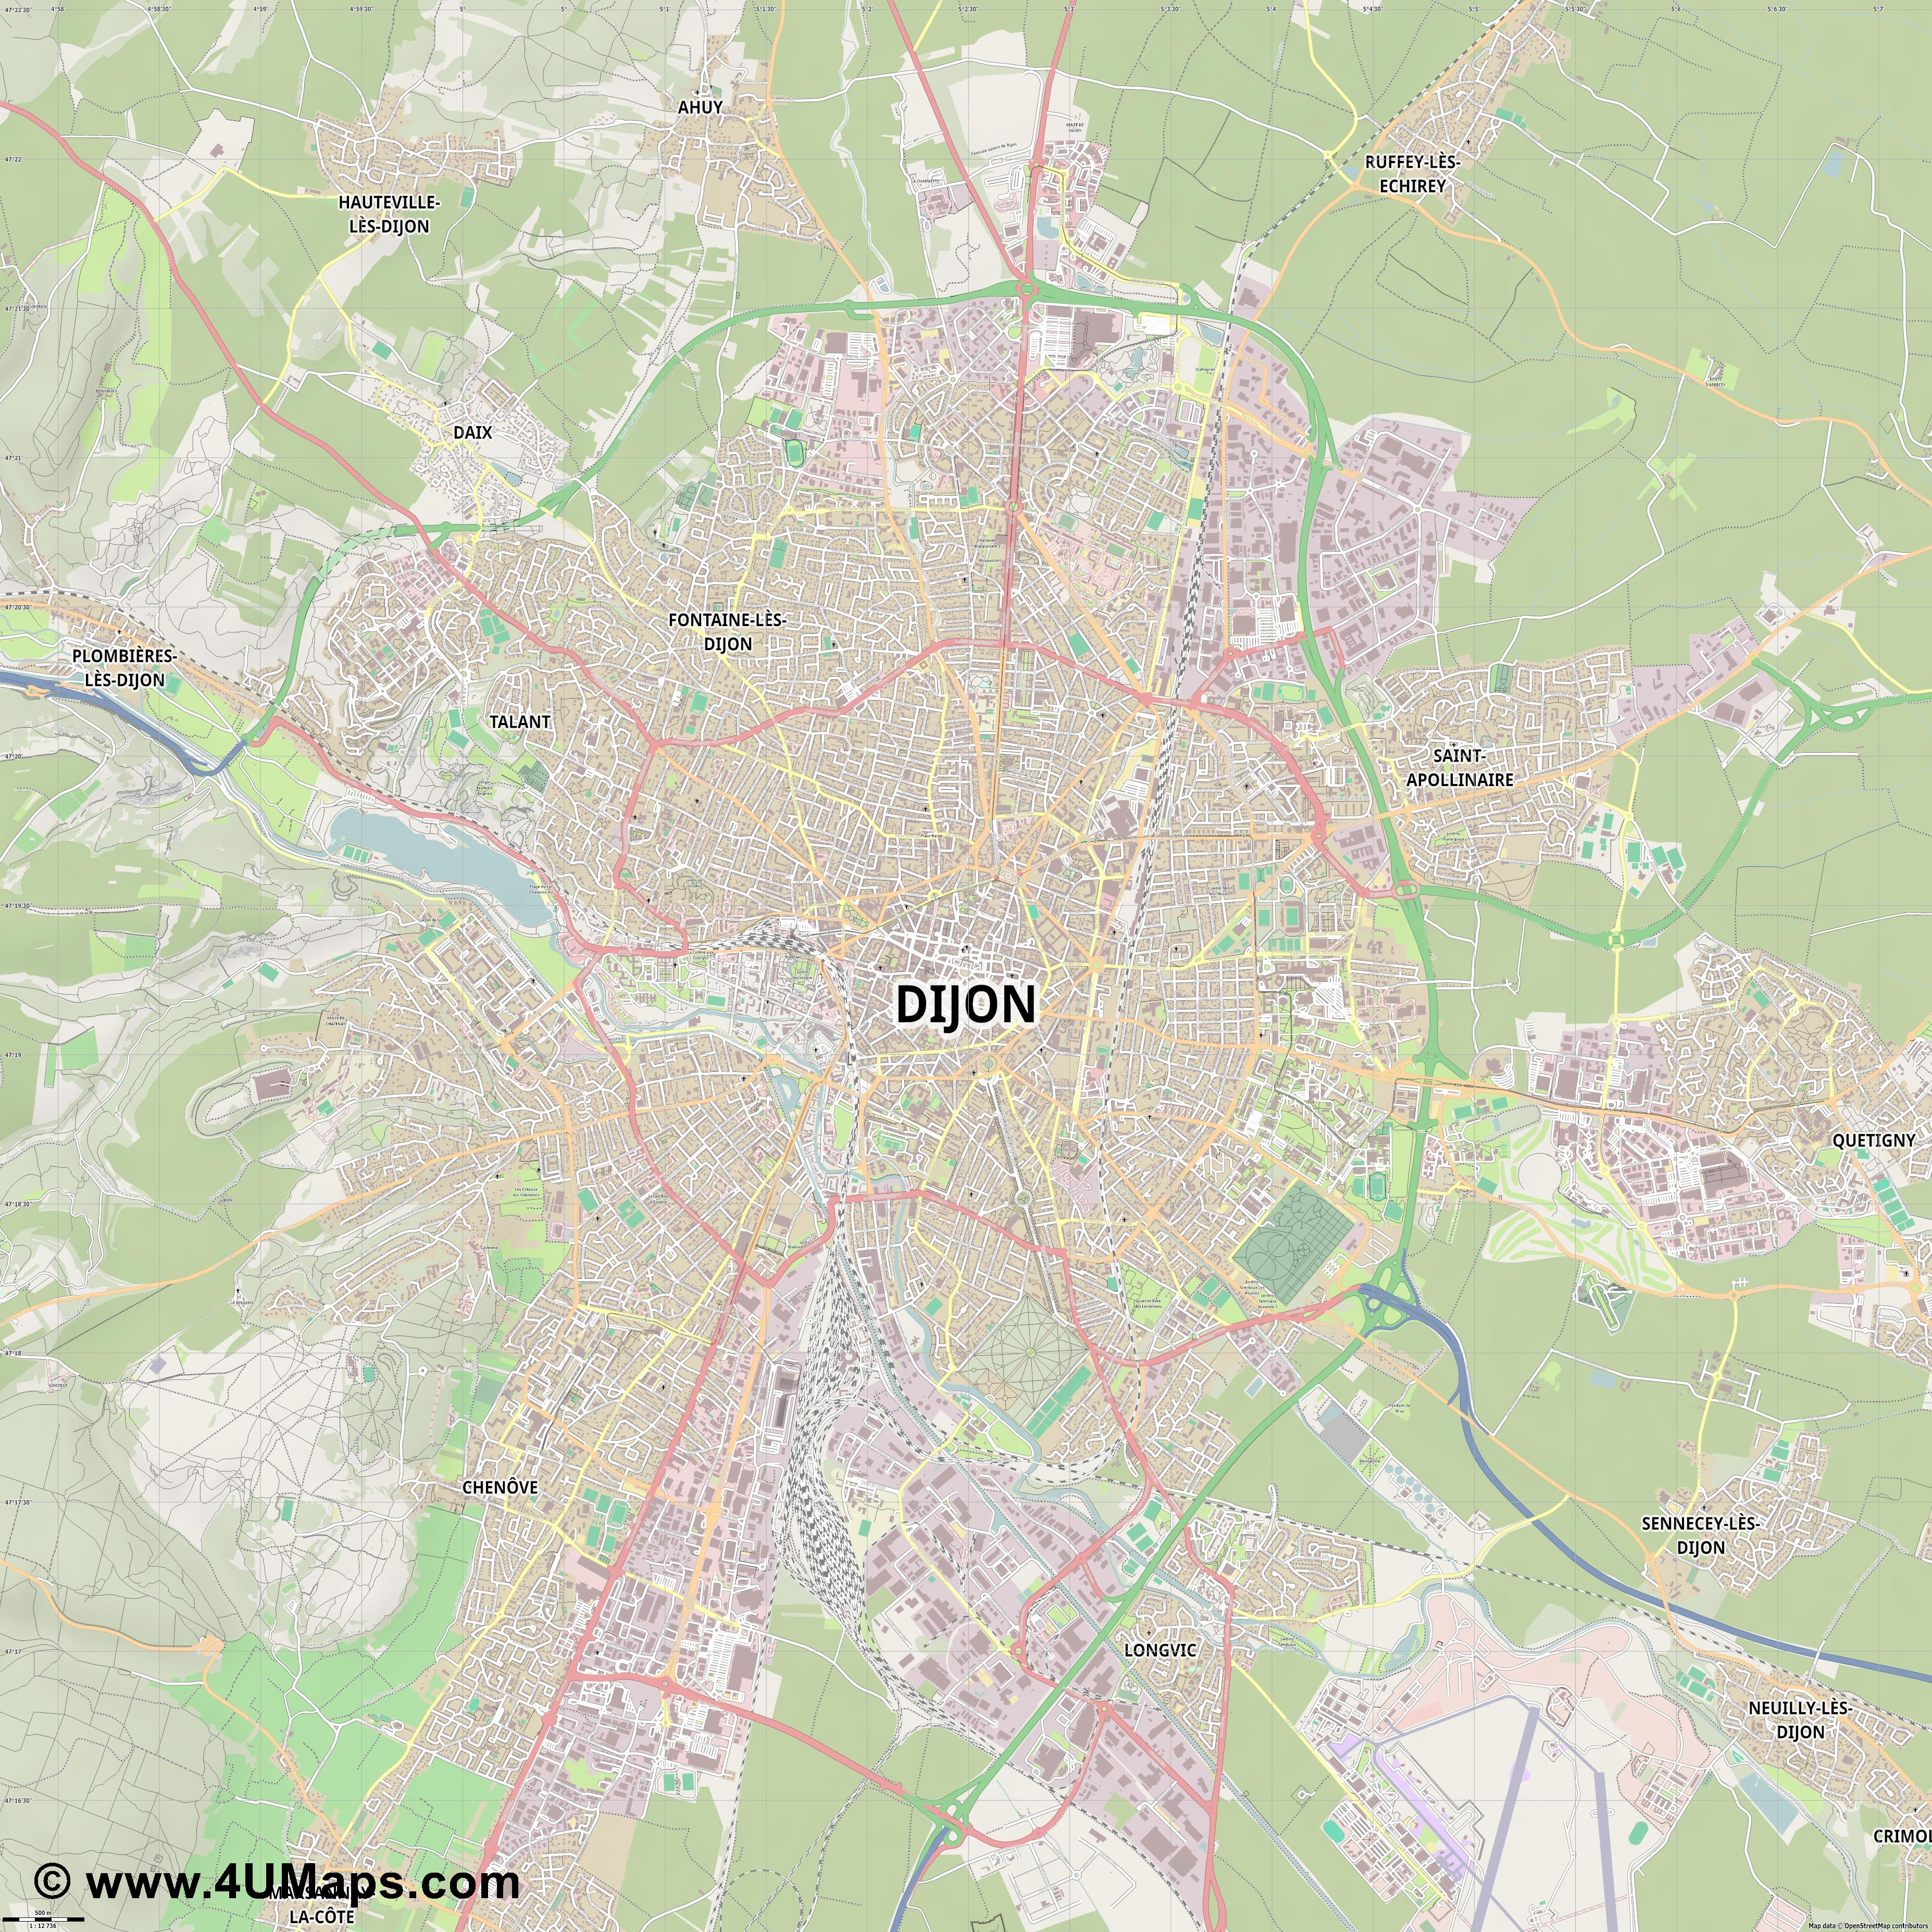 Dijon Digione  jpg ultra high detail preview vector city map